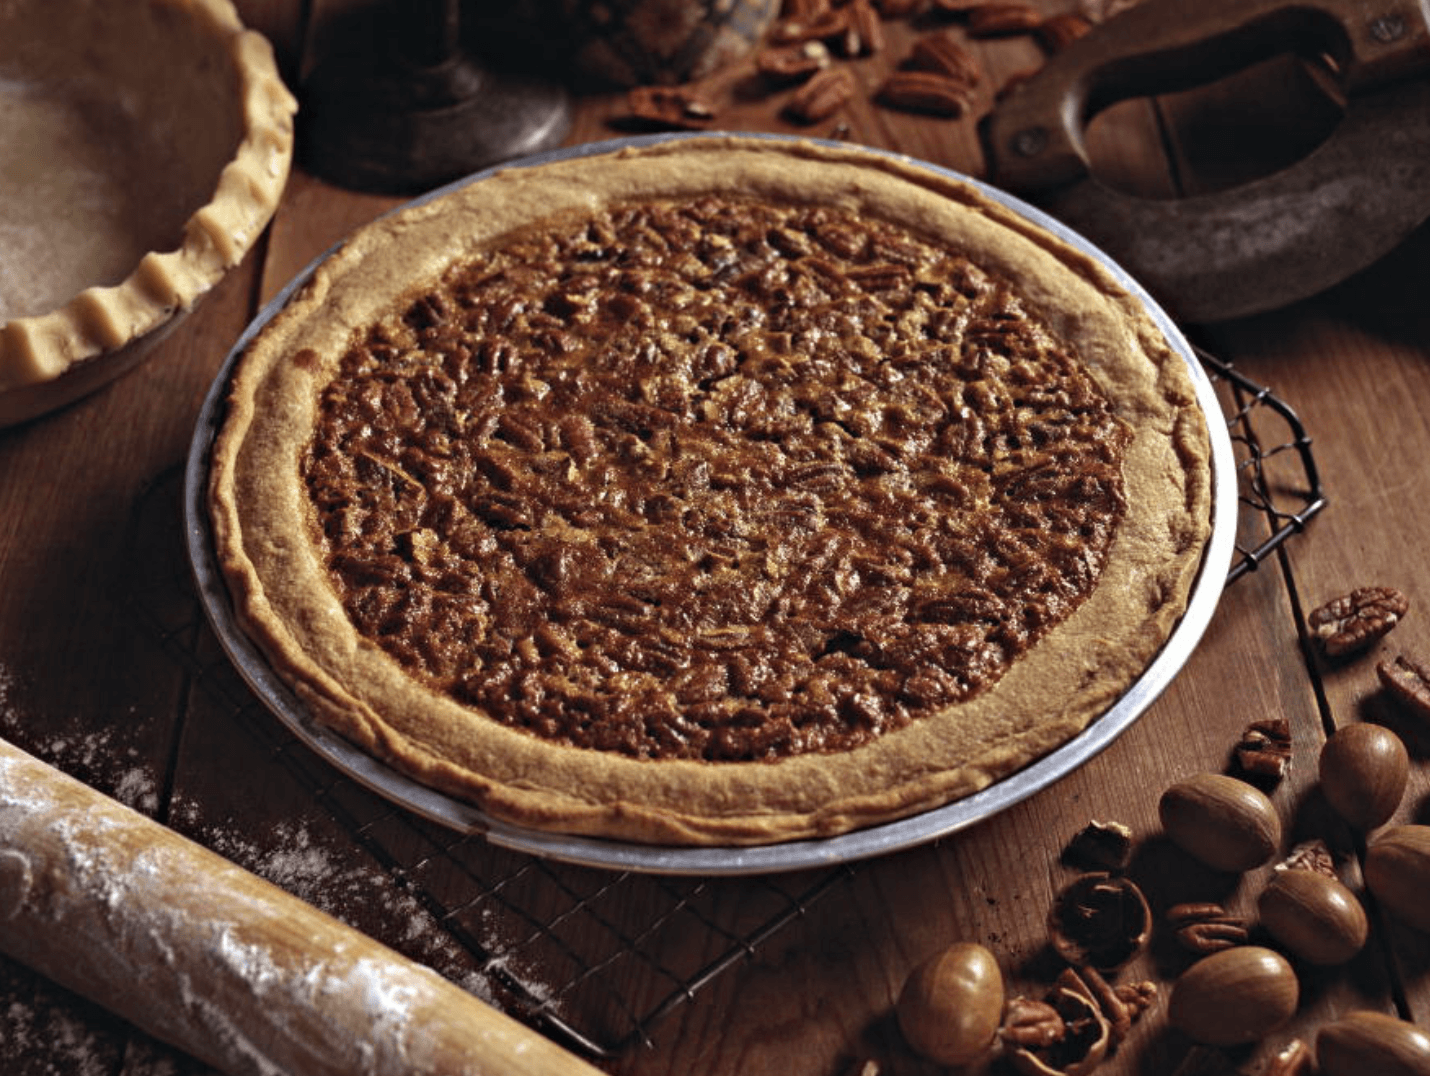 raleigh tavern thanksgiving pie sale, pecan pie, also offering pumpkin and rum cream in colonial williamsburg williamsburg viriginia